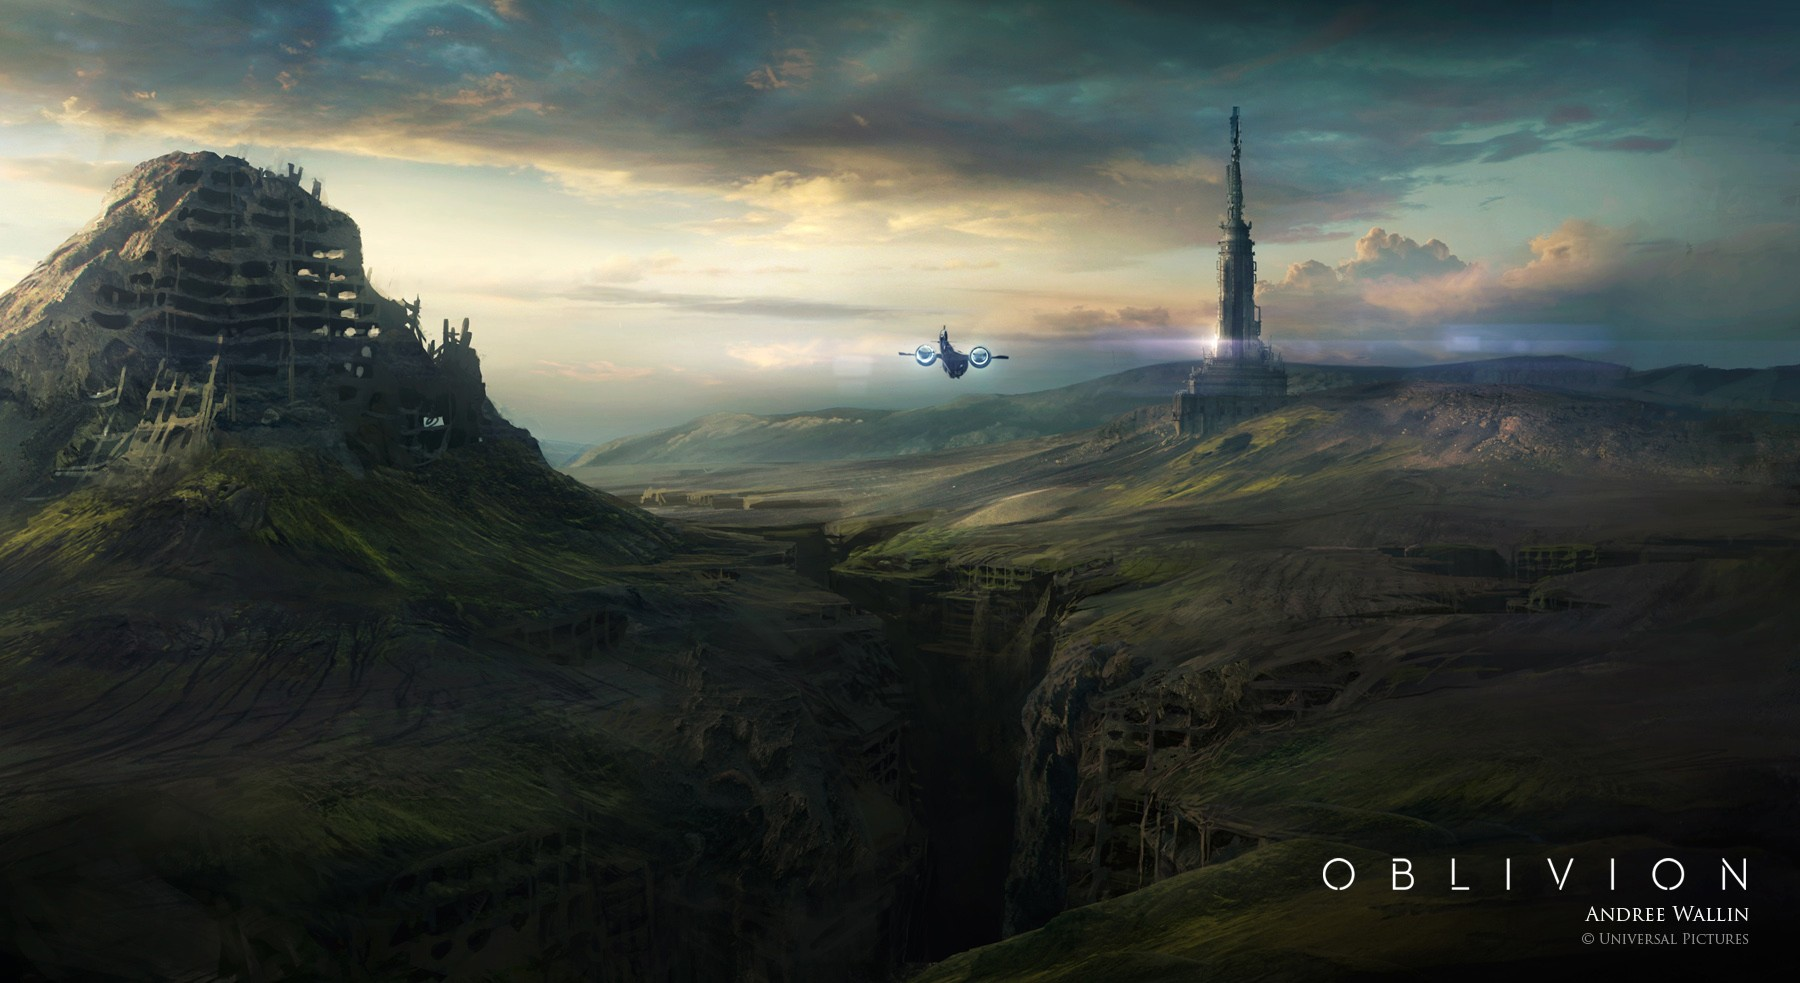 oblivion movie, space, andree wallin, fantasy art, concept art